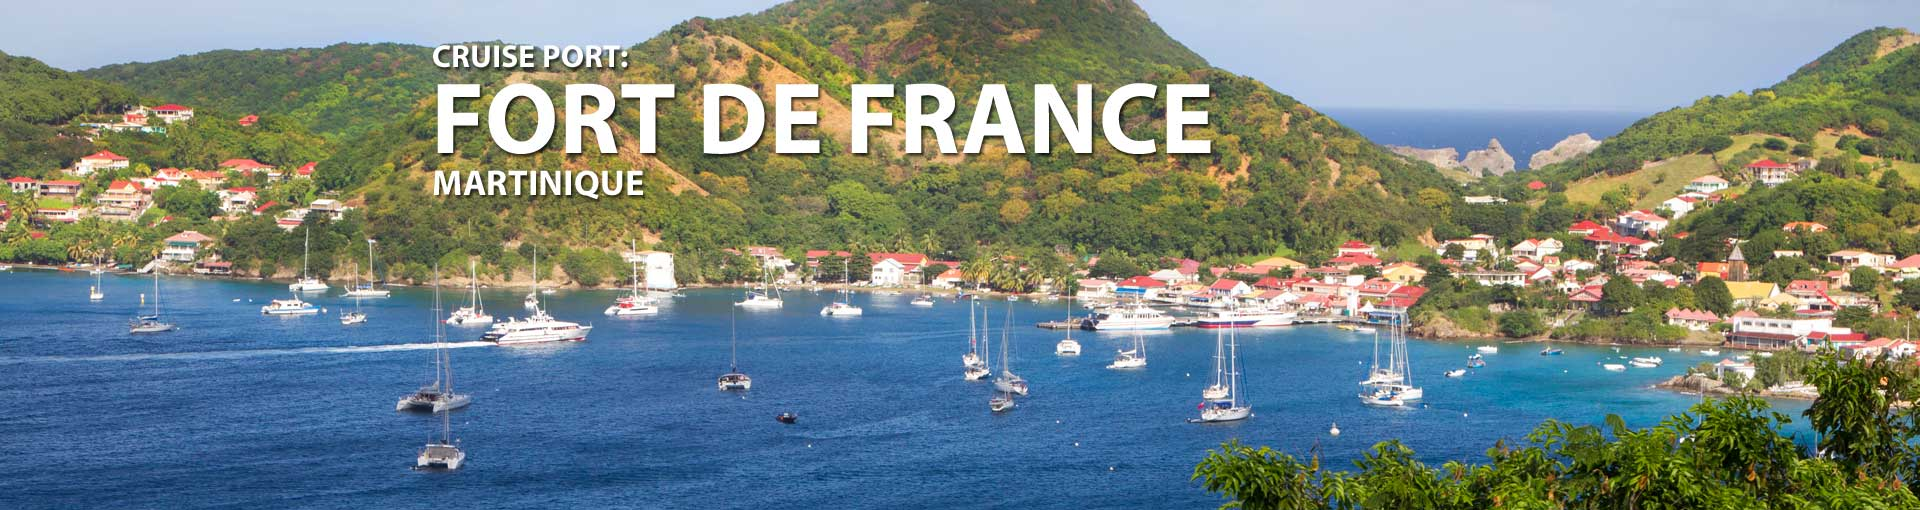 Cruises to Fort de France, Martinique